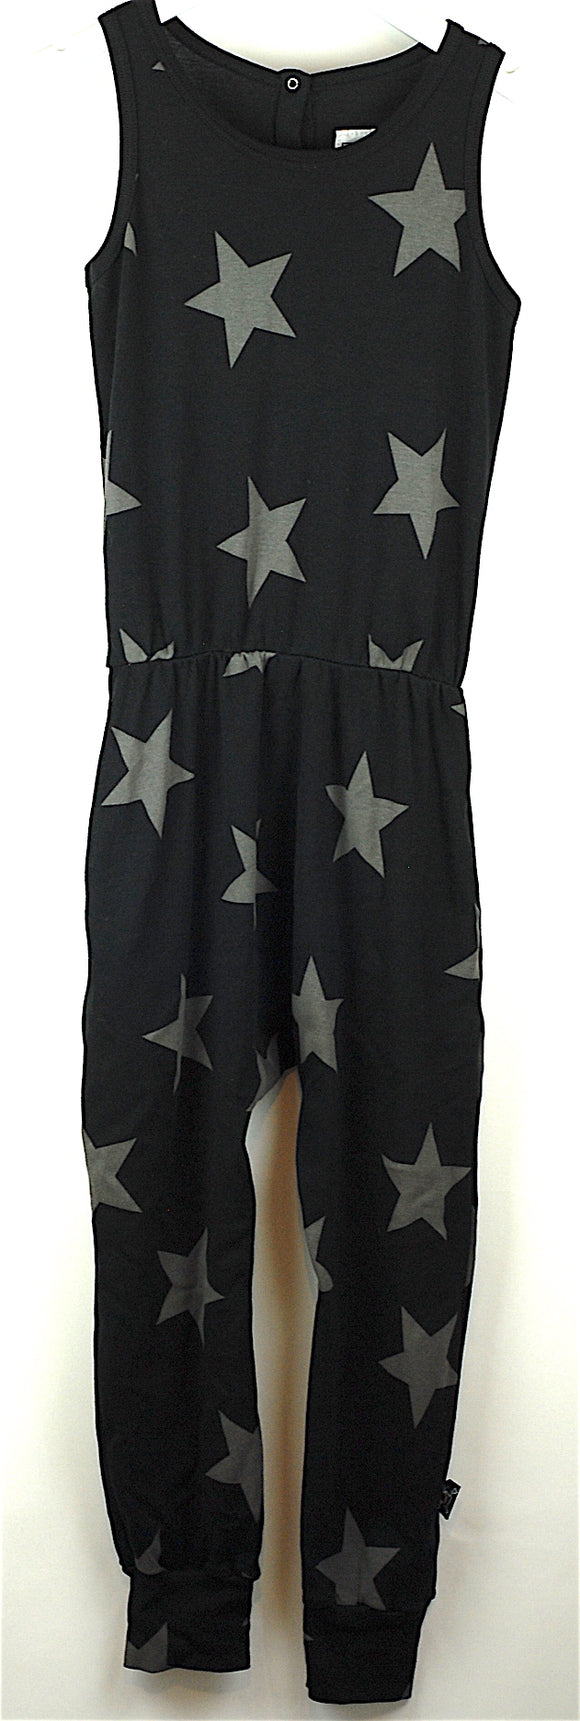 Nununu Black Star Jumpsuit